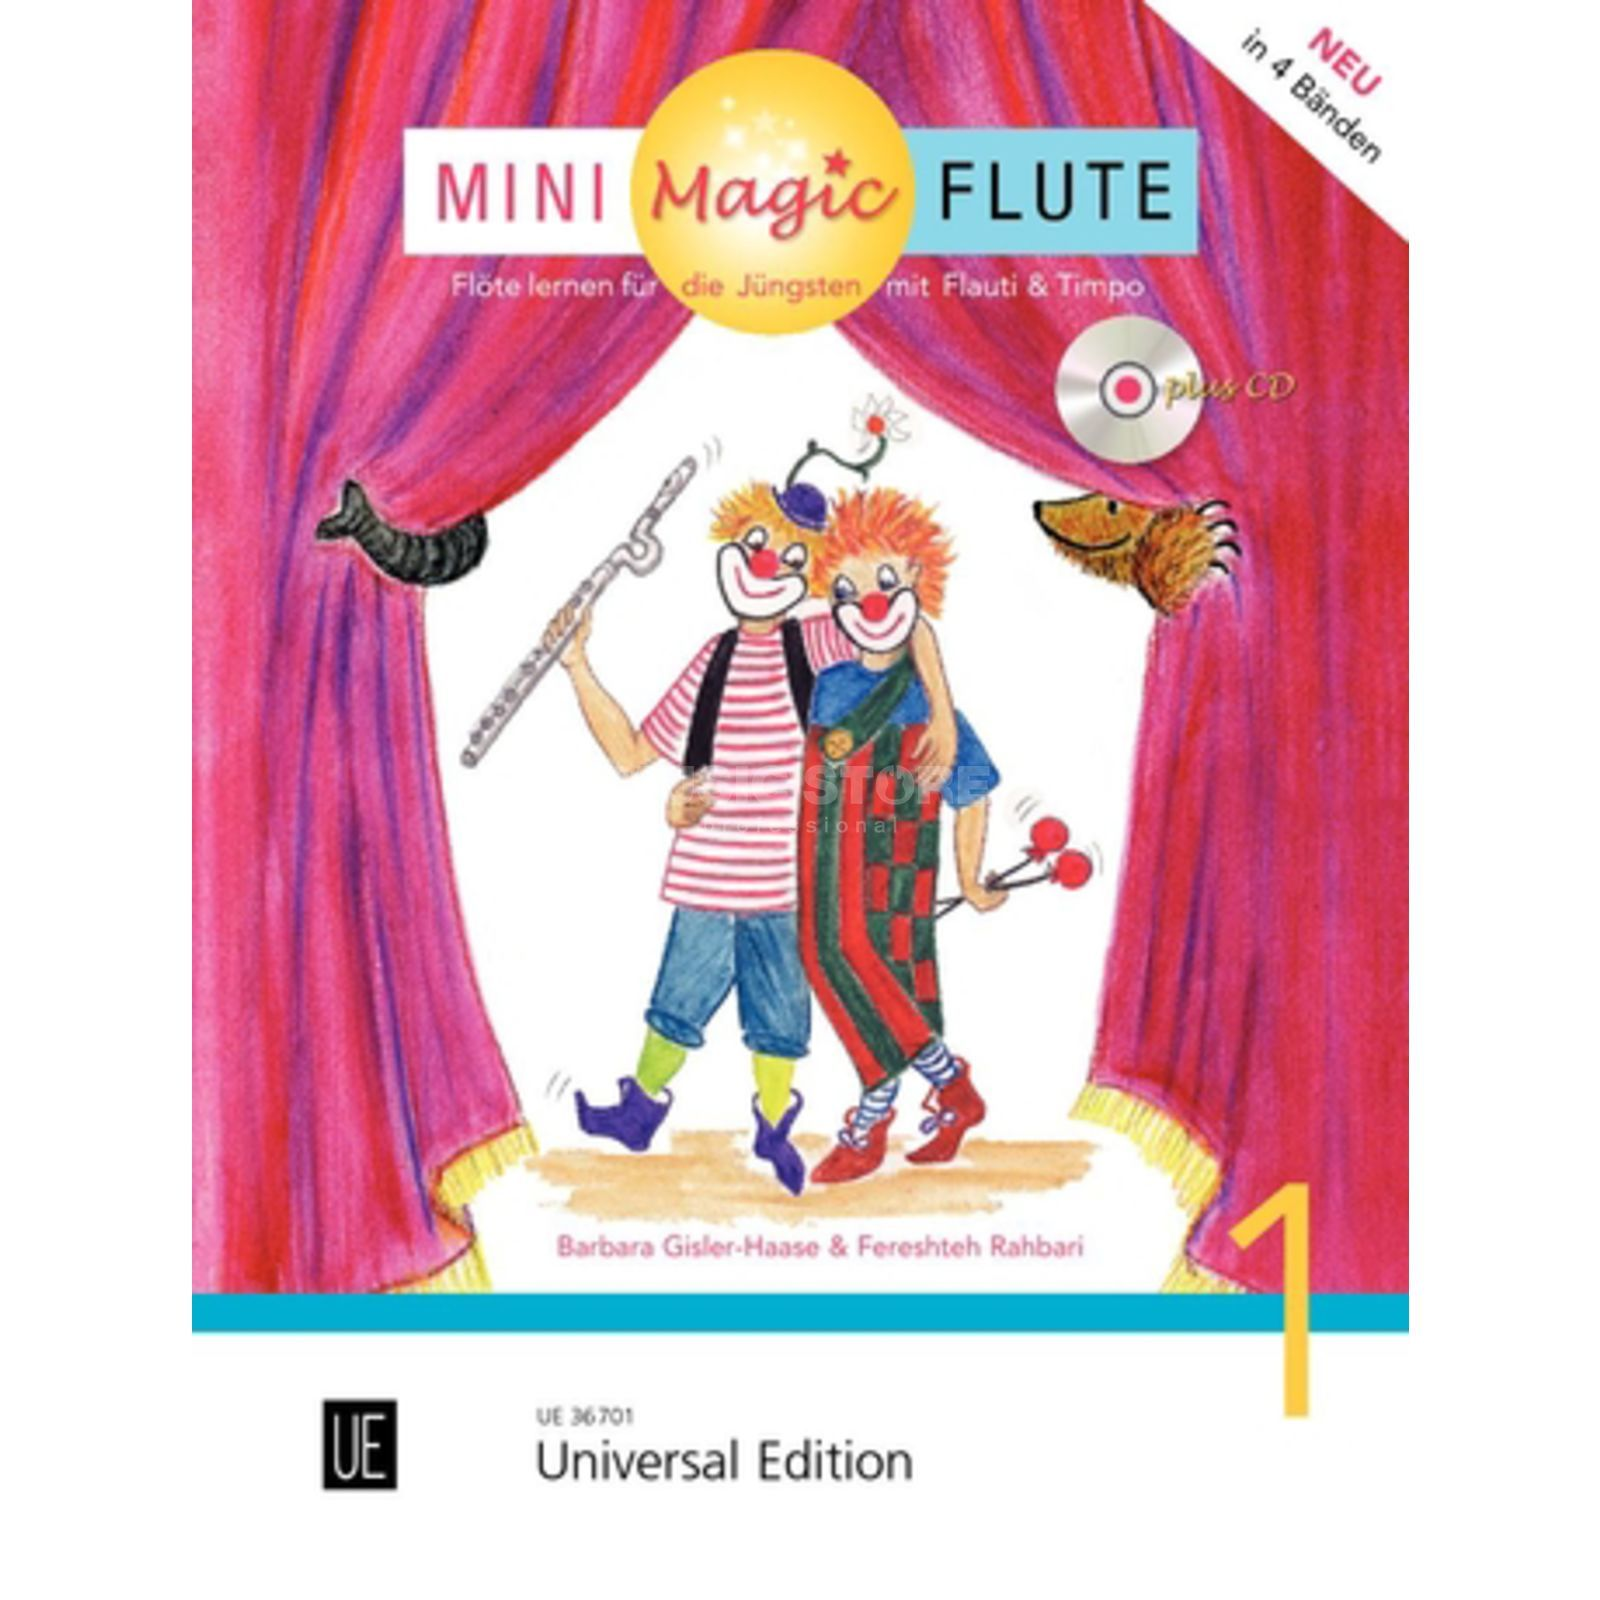 Universal Edition Mini Magic Flute 1 Barbara Gisler-Haase, Flöte/CD Produktbillede